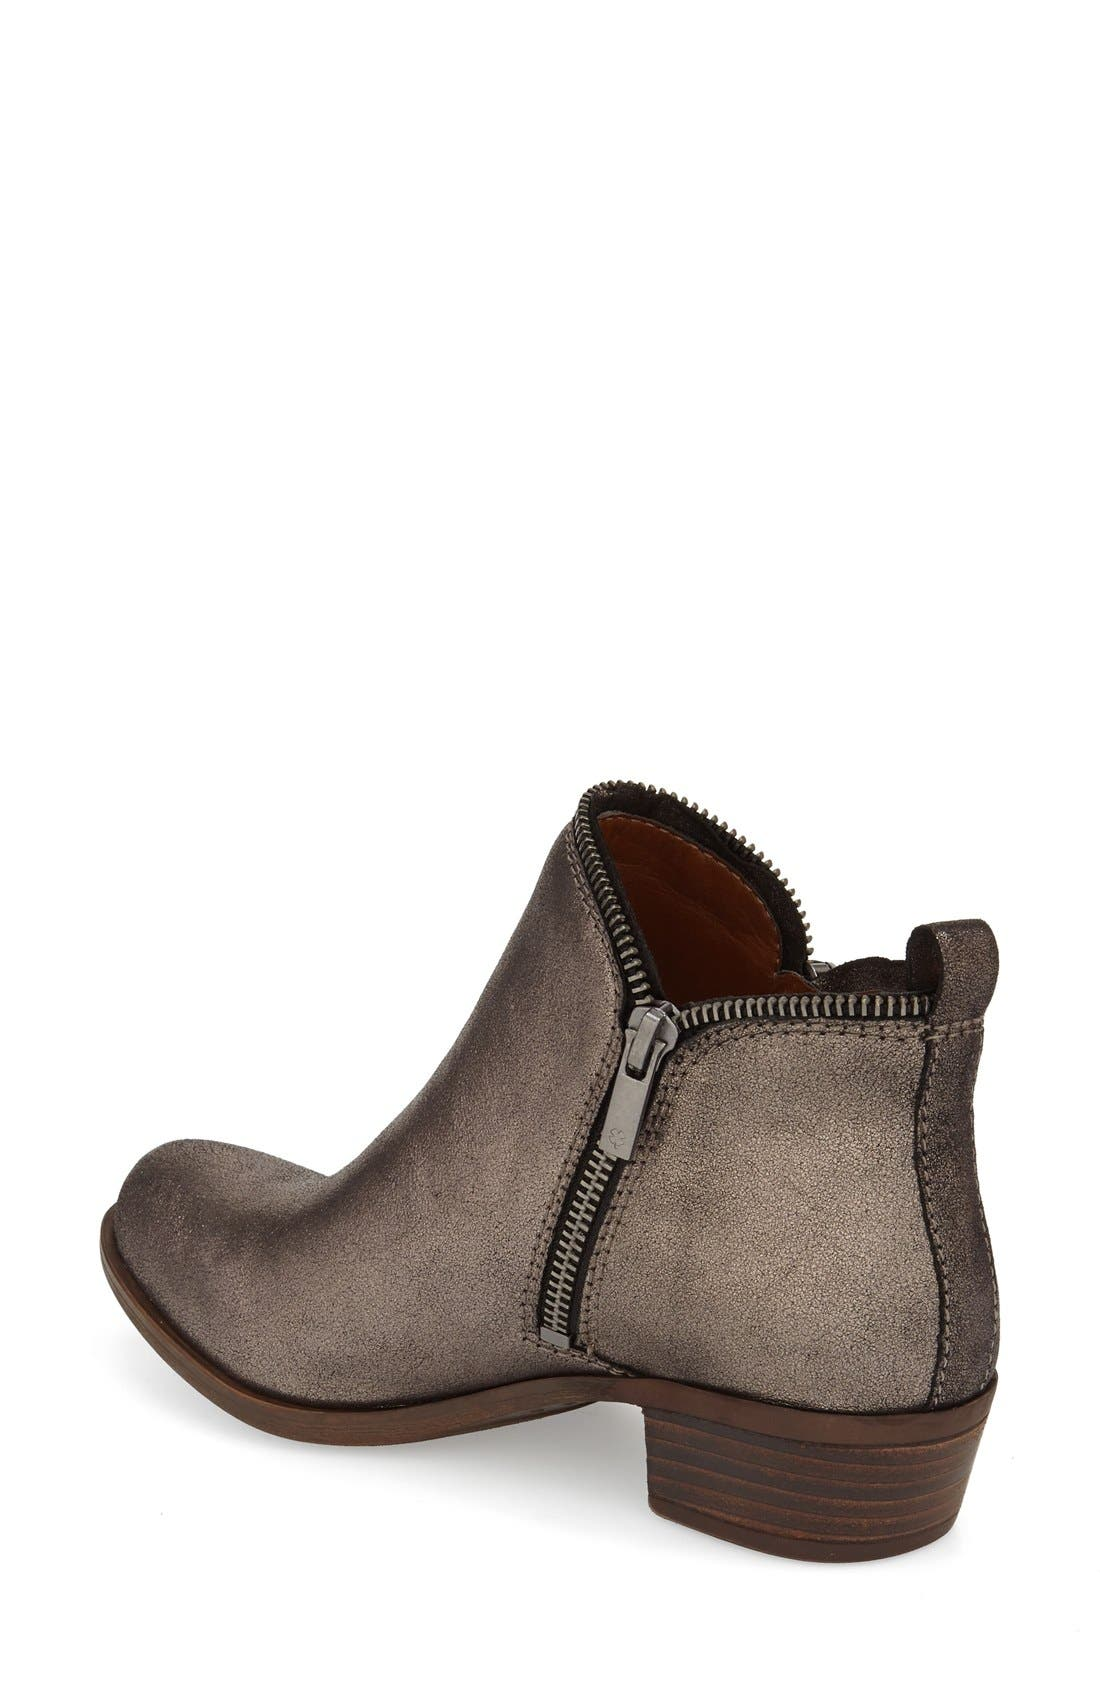 Alternate Image 2  - Lucky Brand 'Bartalino' Bootie (Women)